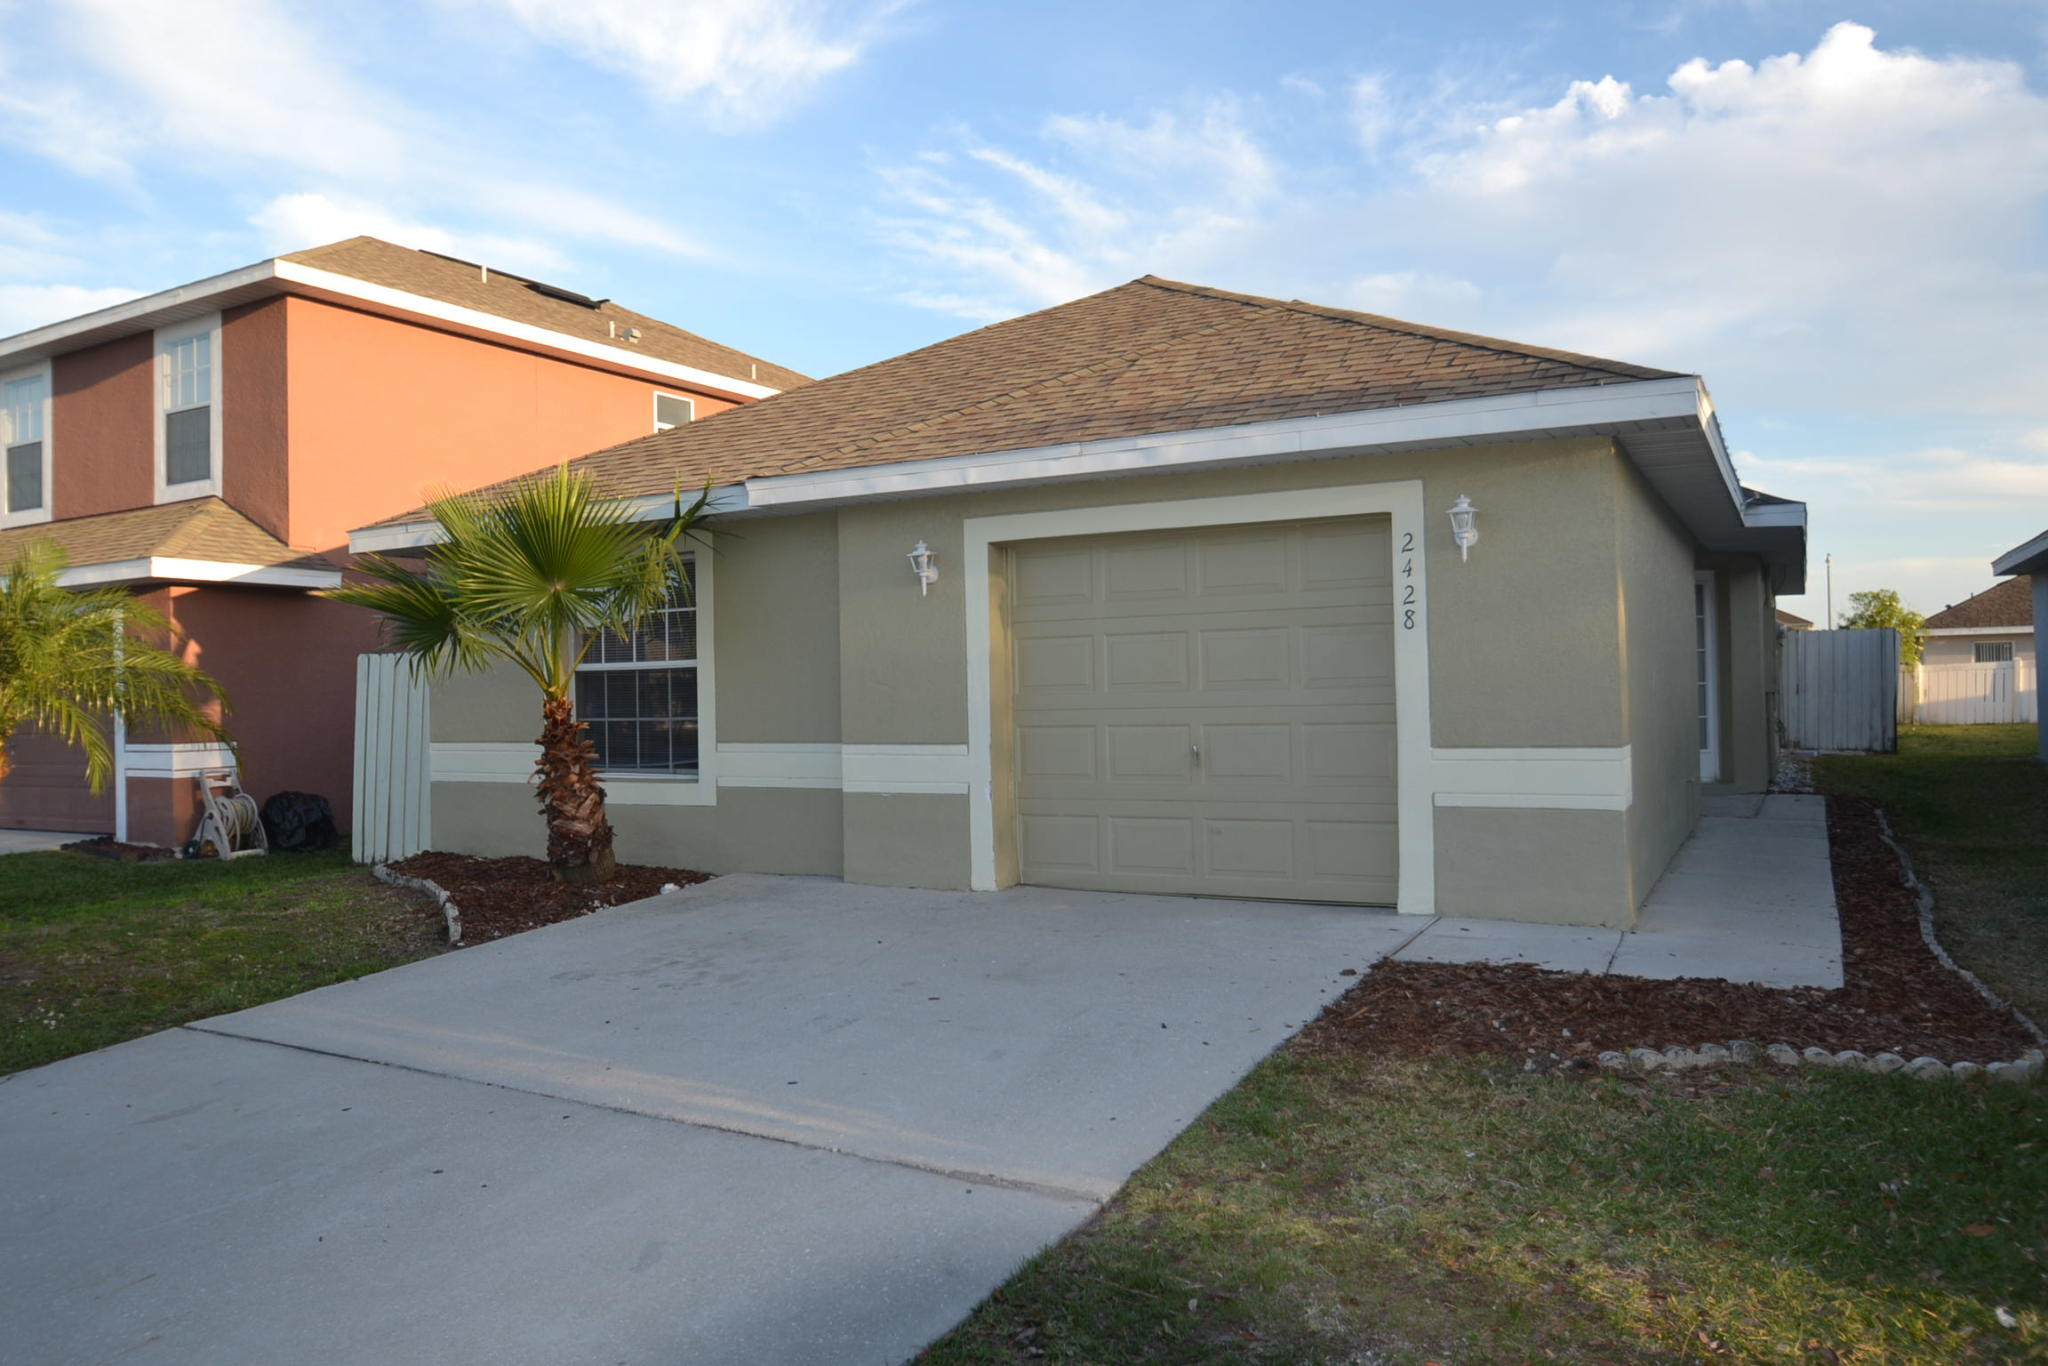 2428 ashecroft dr for rent kissimmee fl trulia 2428 ashecroft dr solutioingenieria Image collections